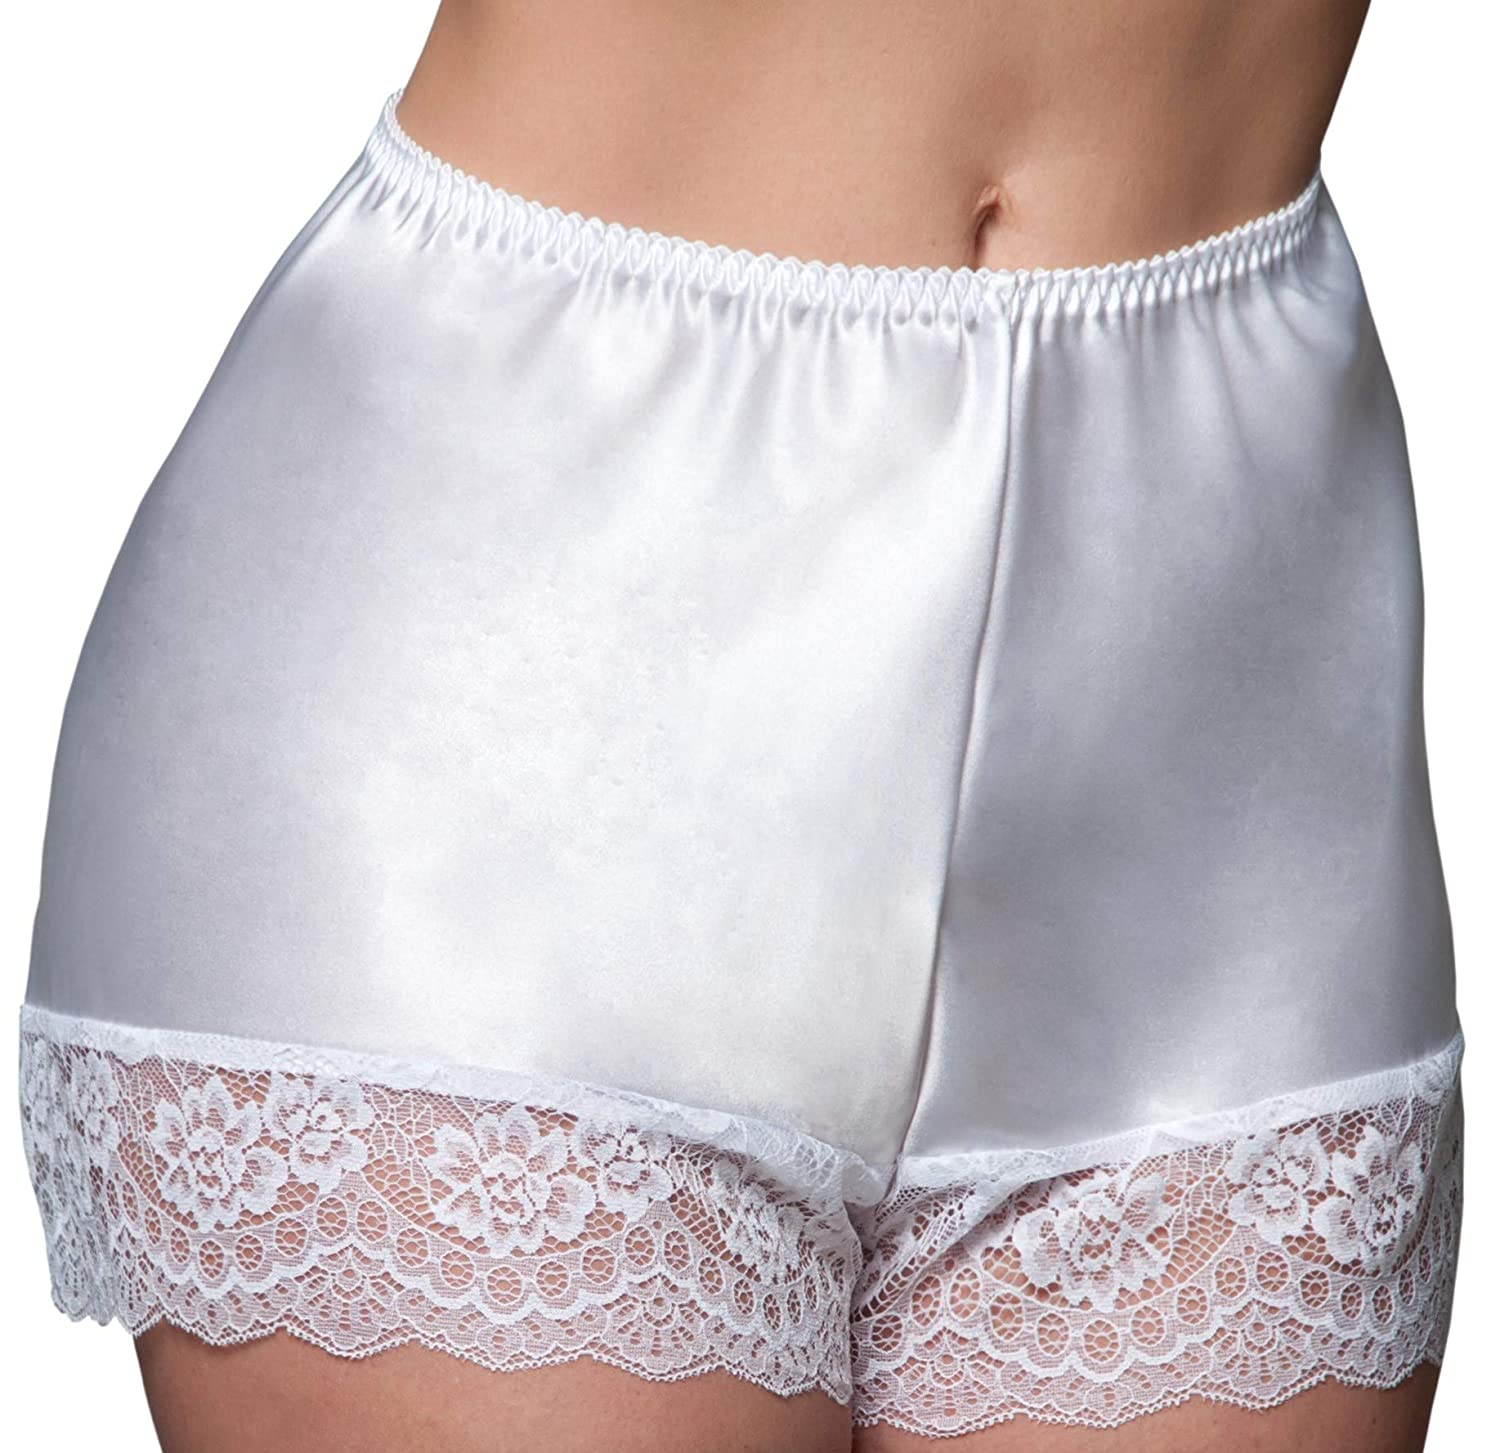 sale online new lower prices quality products Nancies Lingerie Luxury White Shiny Satin French Knickers (NLcami) [UK]